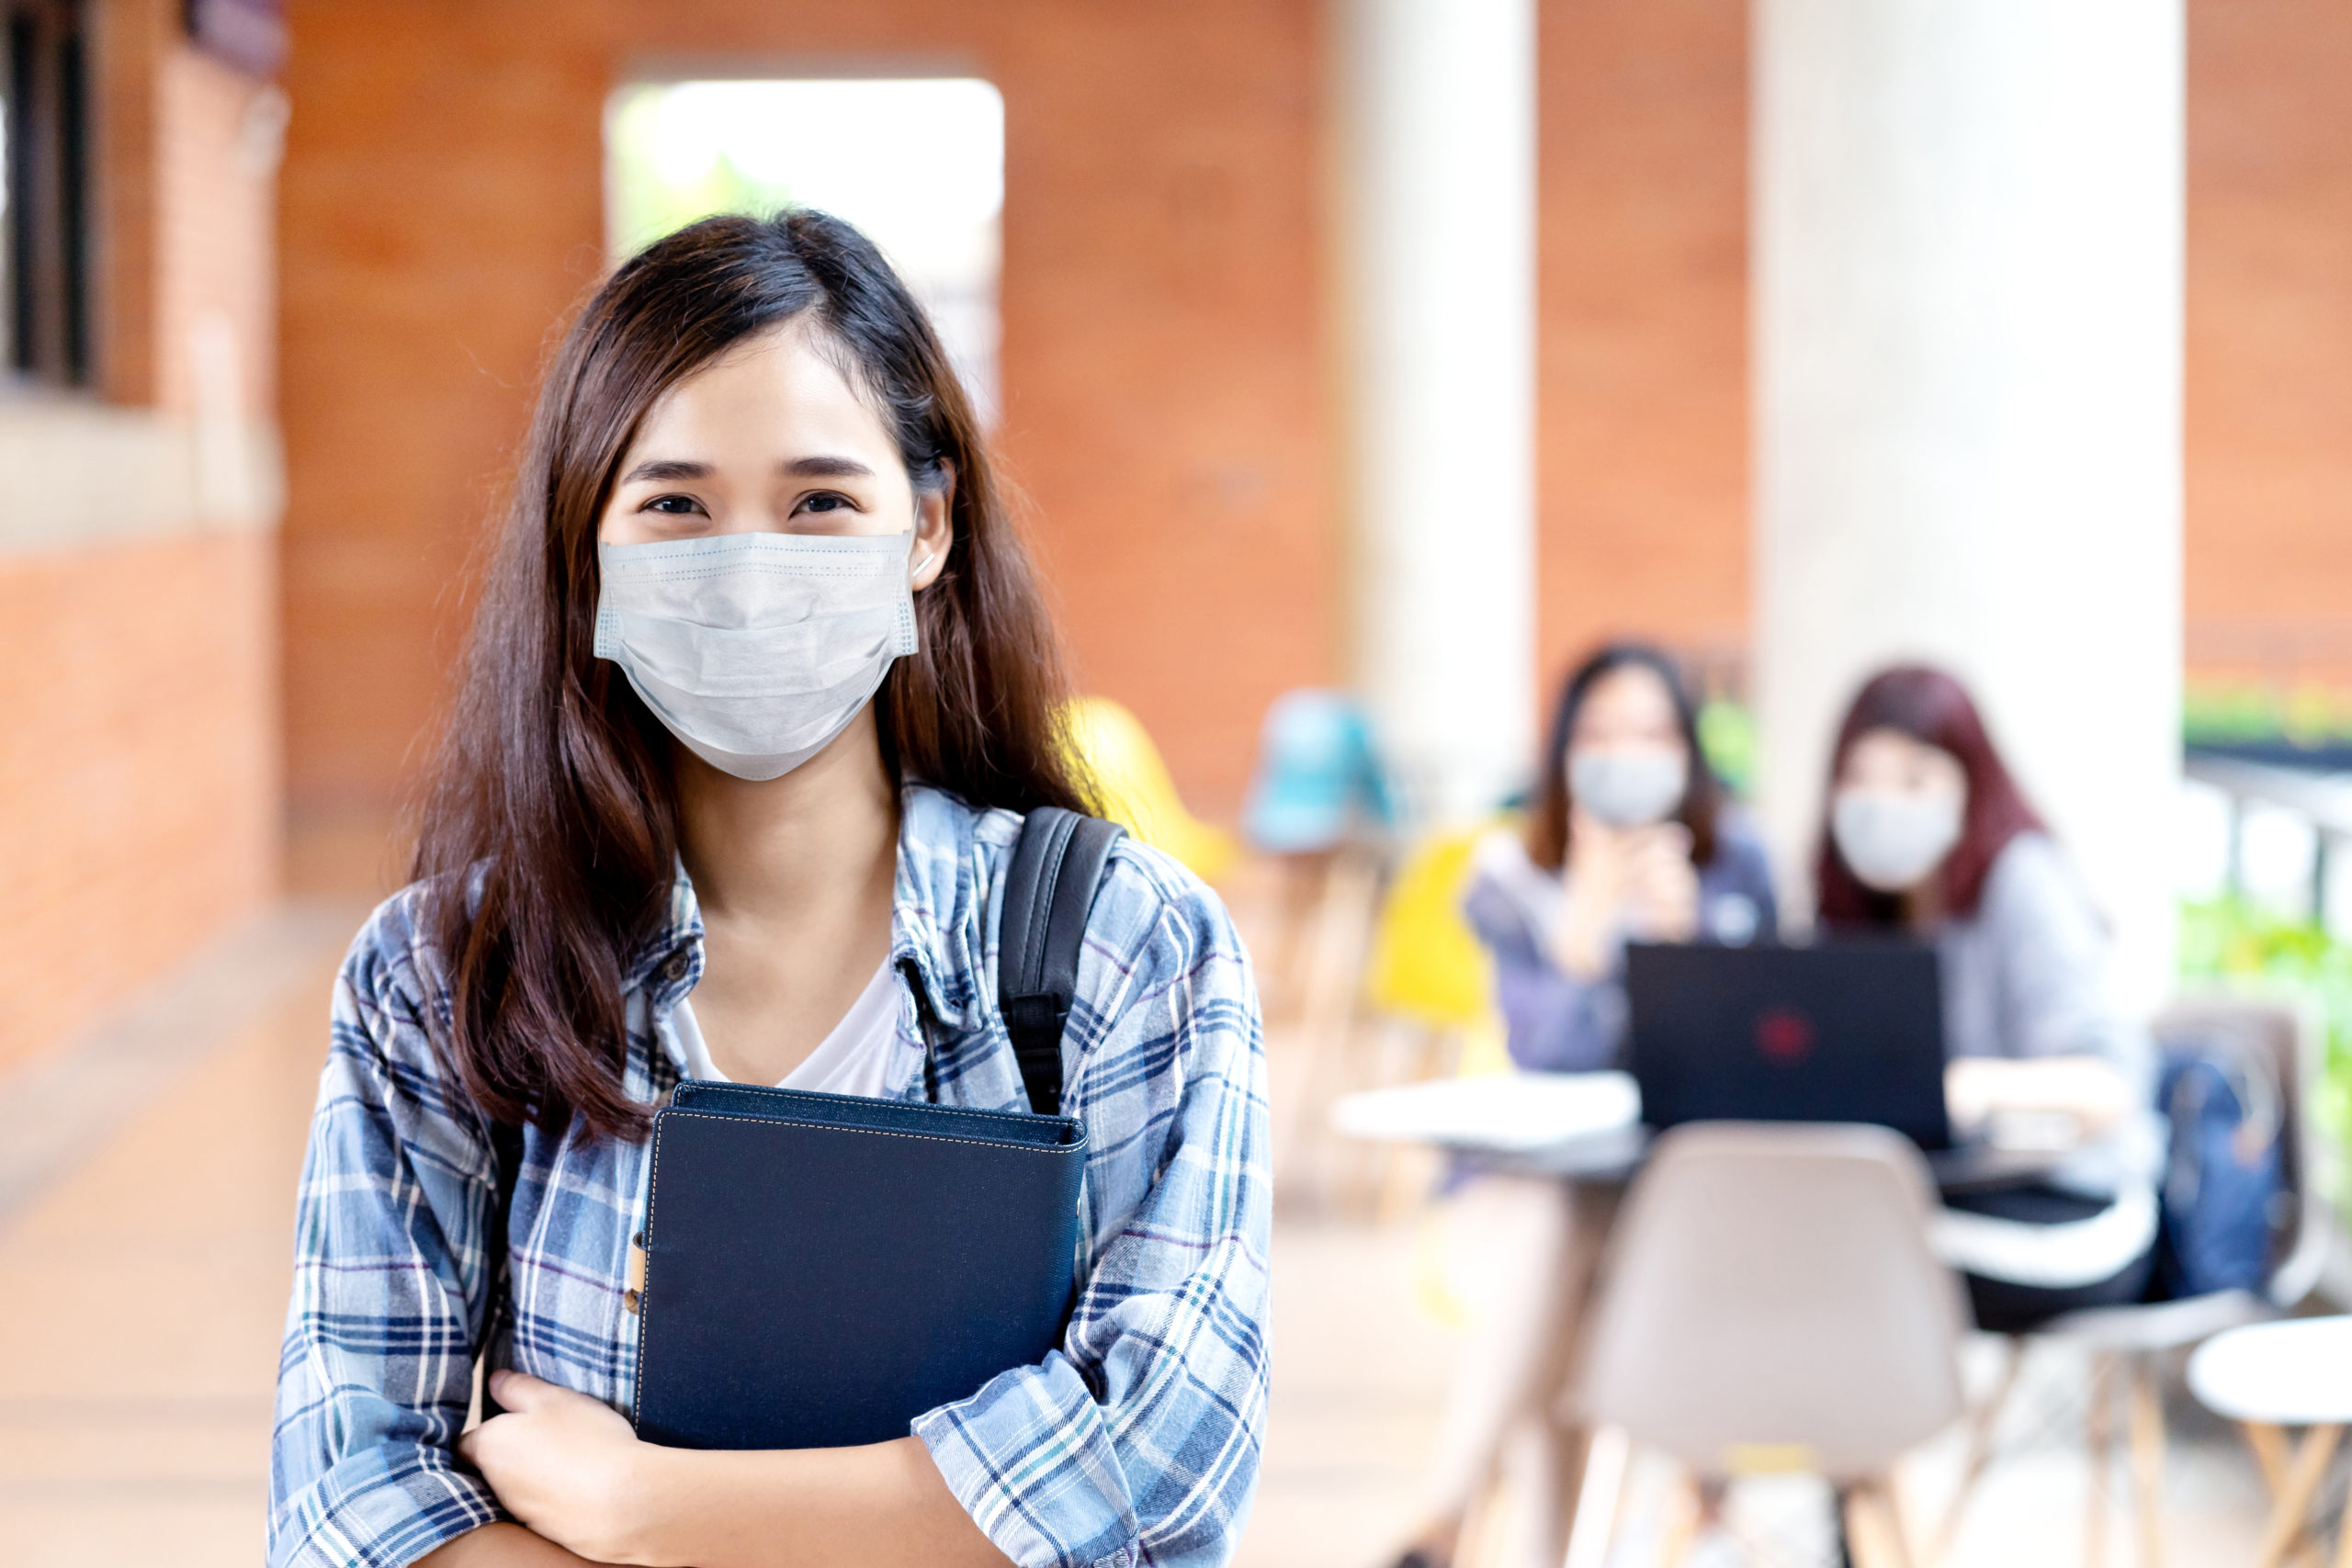 Portrait of young asian student wear mask looking at camera holding notebook or tablet in arm in concept come back or return to school, school reopening and unlock after covid or coronavirus outbreak.